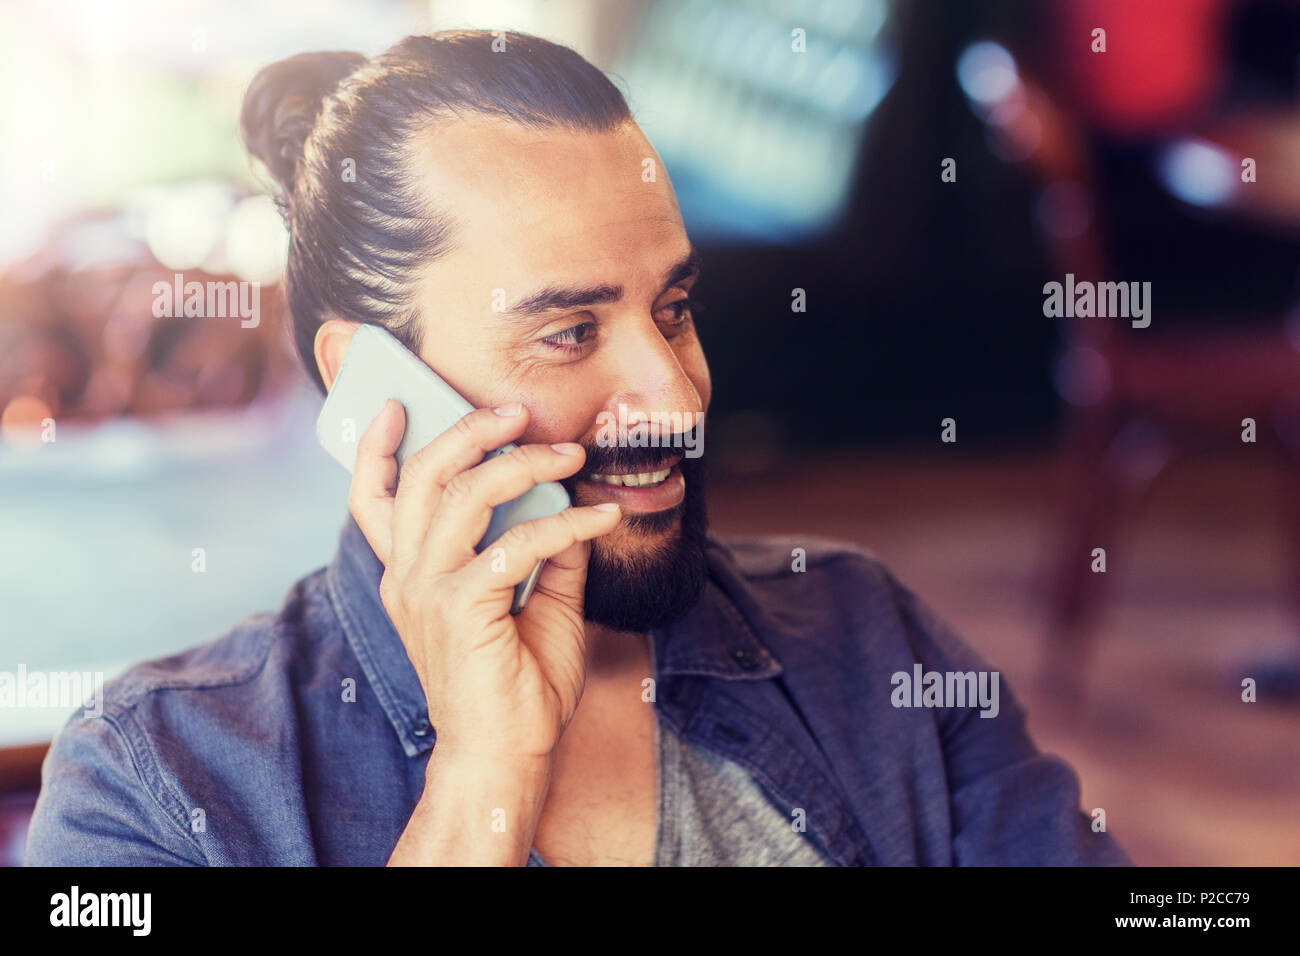 happy man calling on smartphone at bar or pub - Stock Image